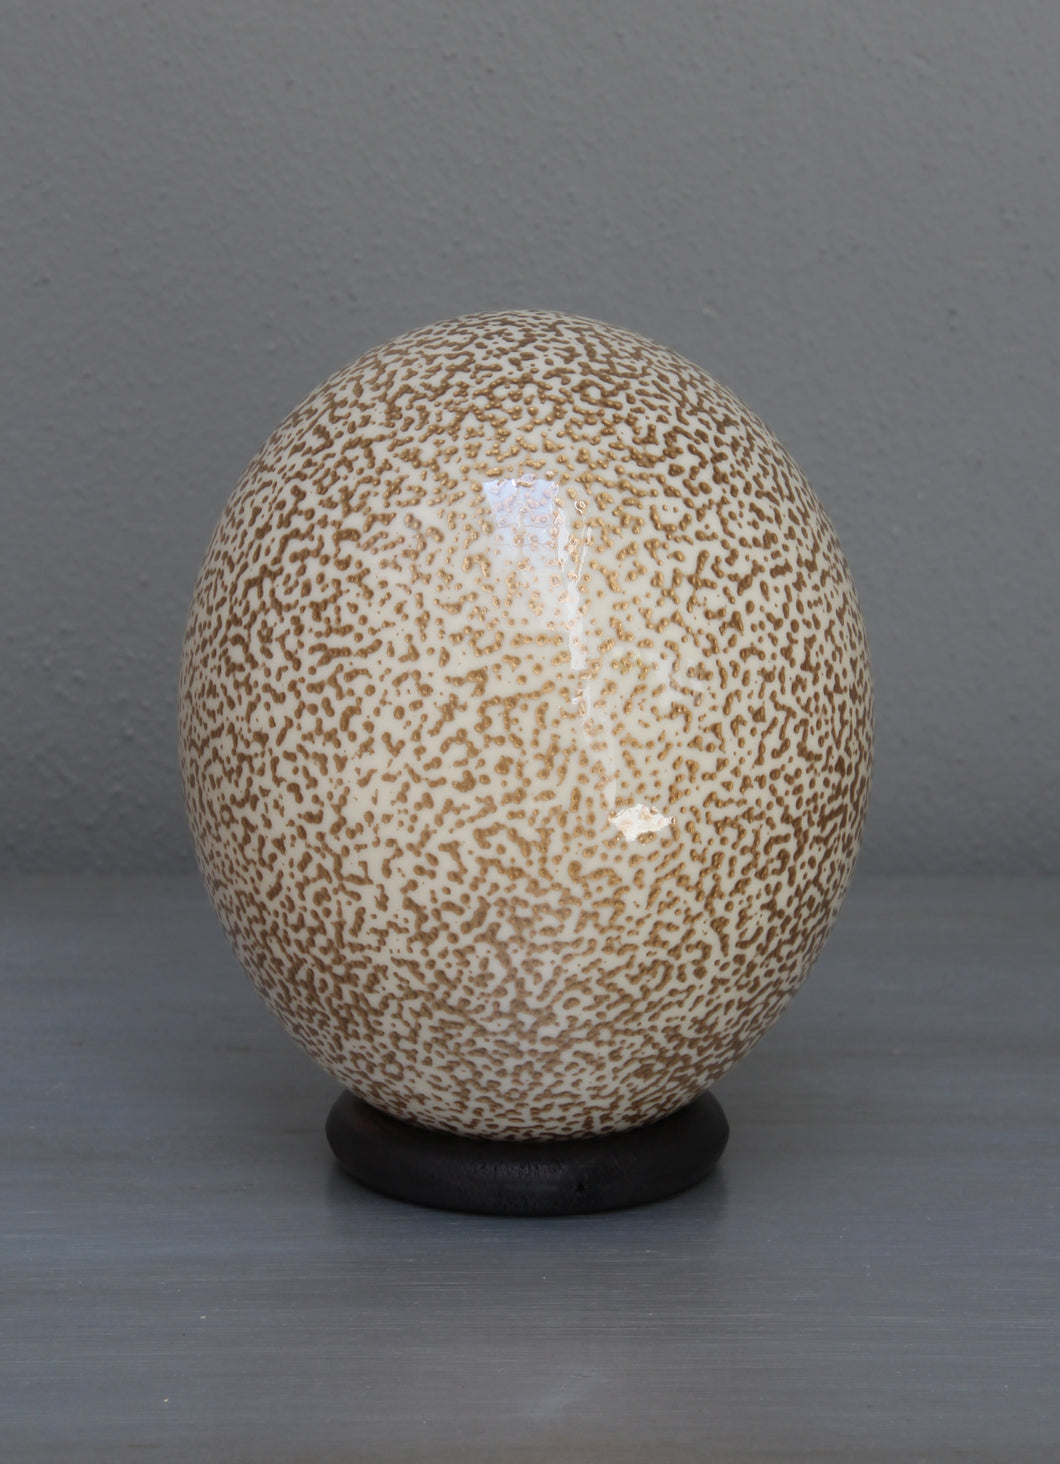 Speckled cream and gold ostrich egg